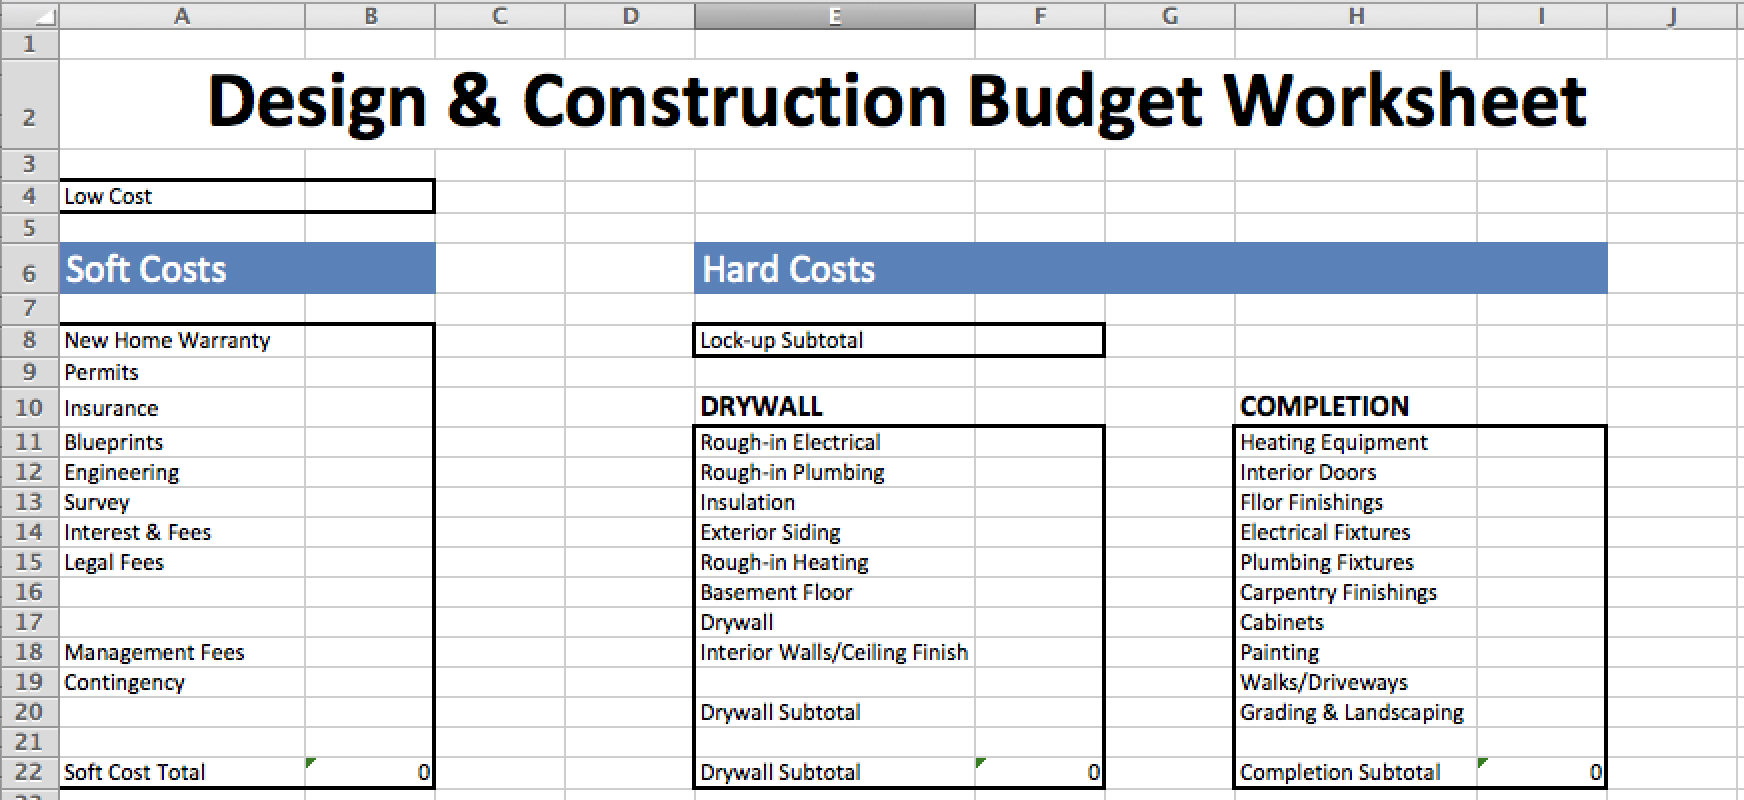 4 Best Design Construction Cost Estimation Methods